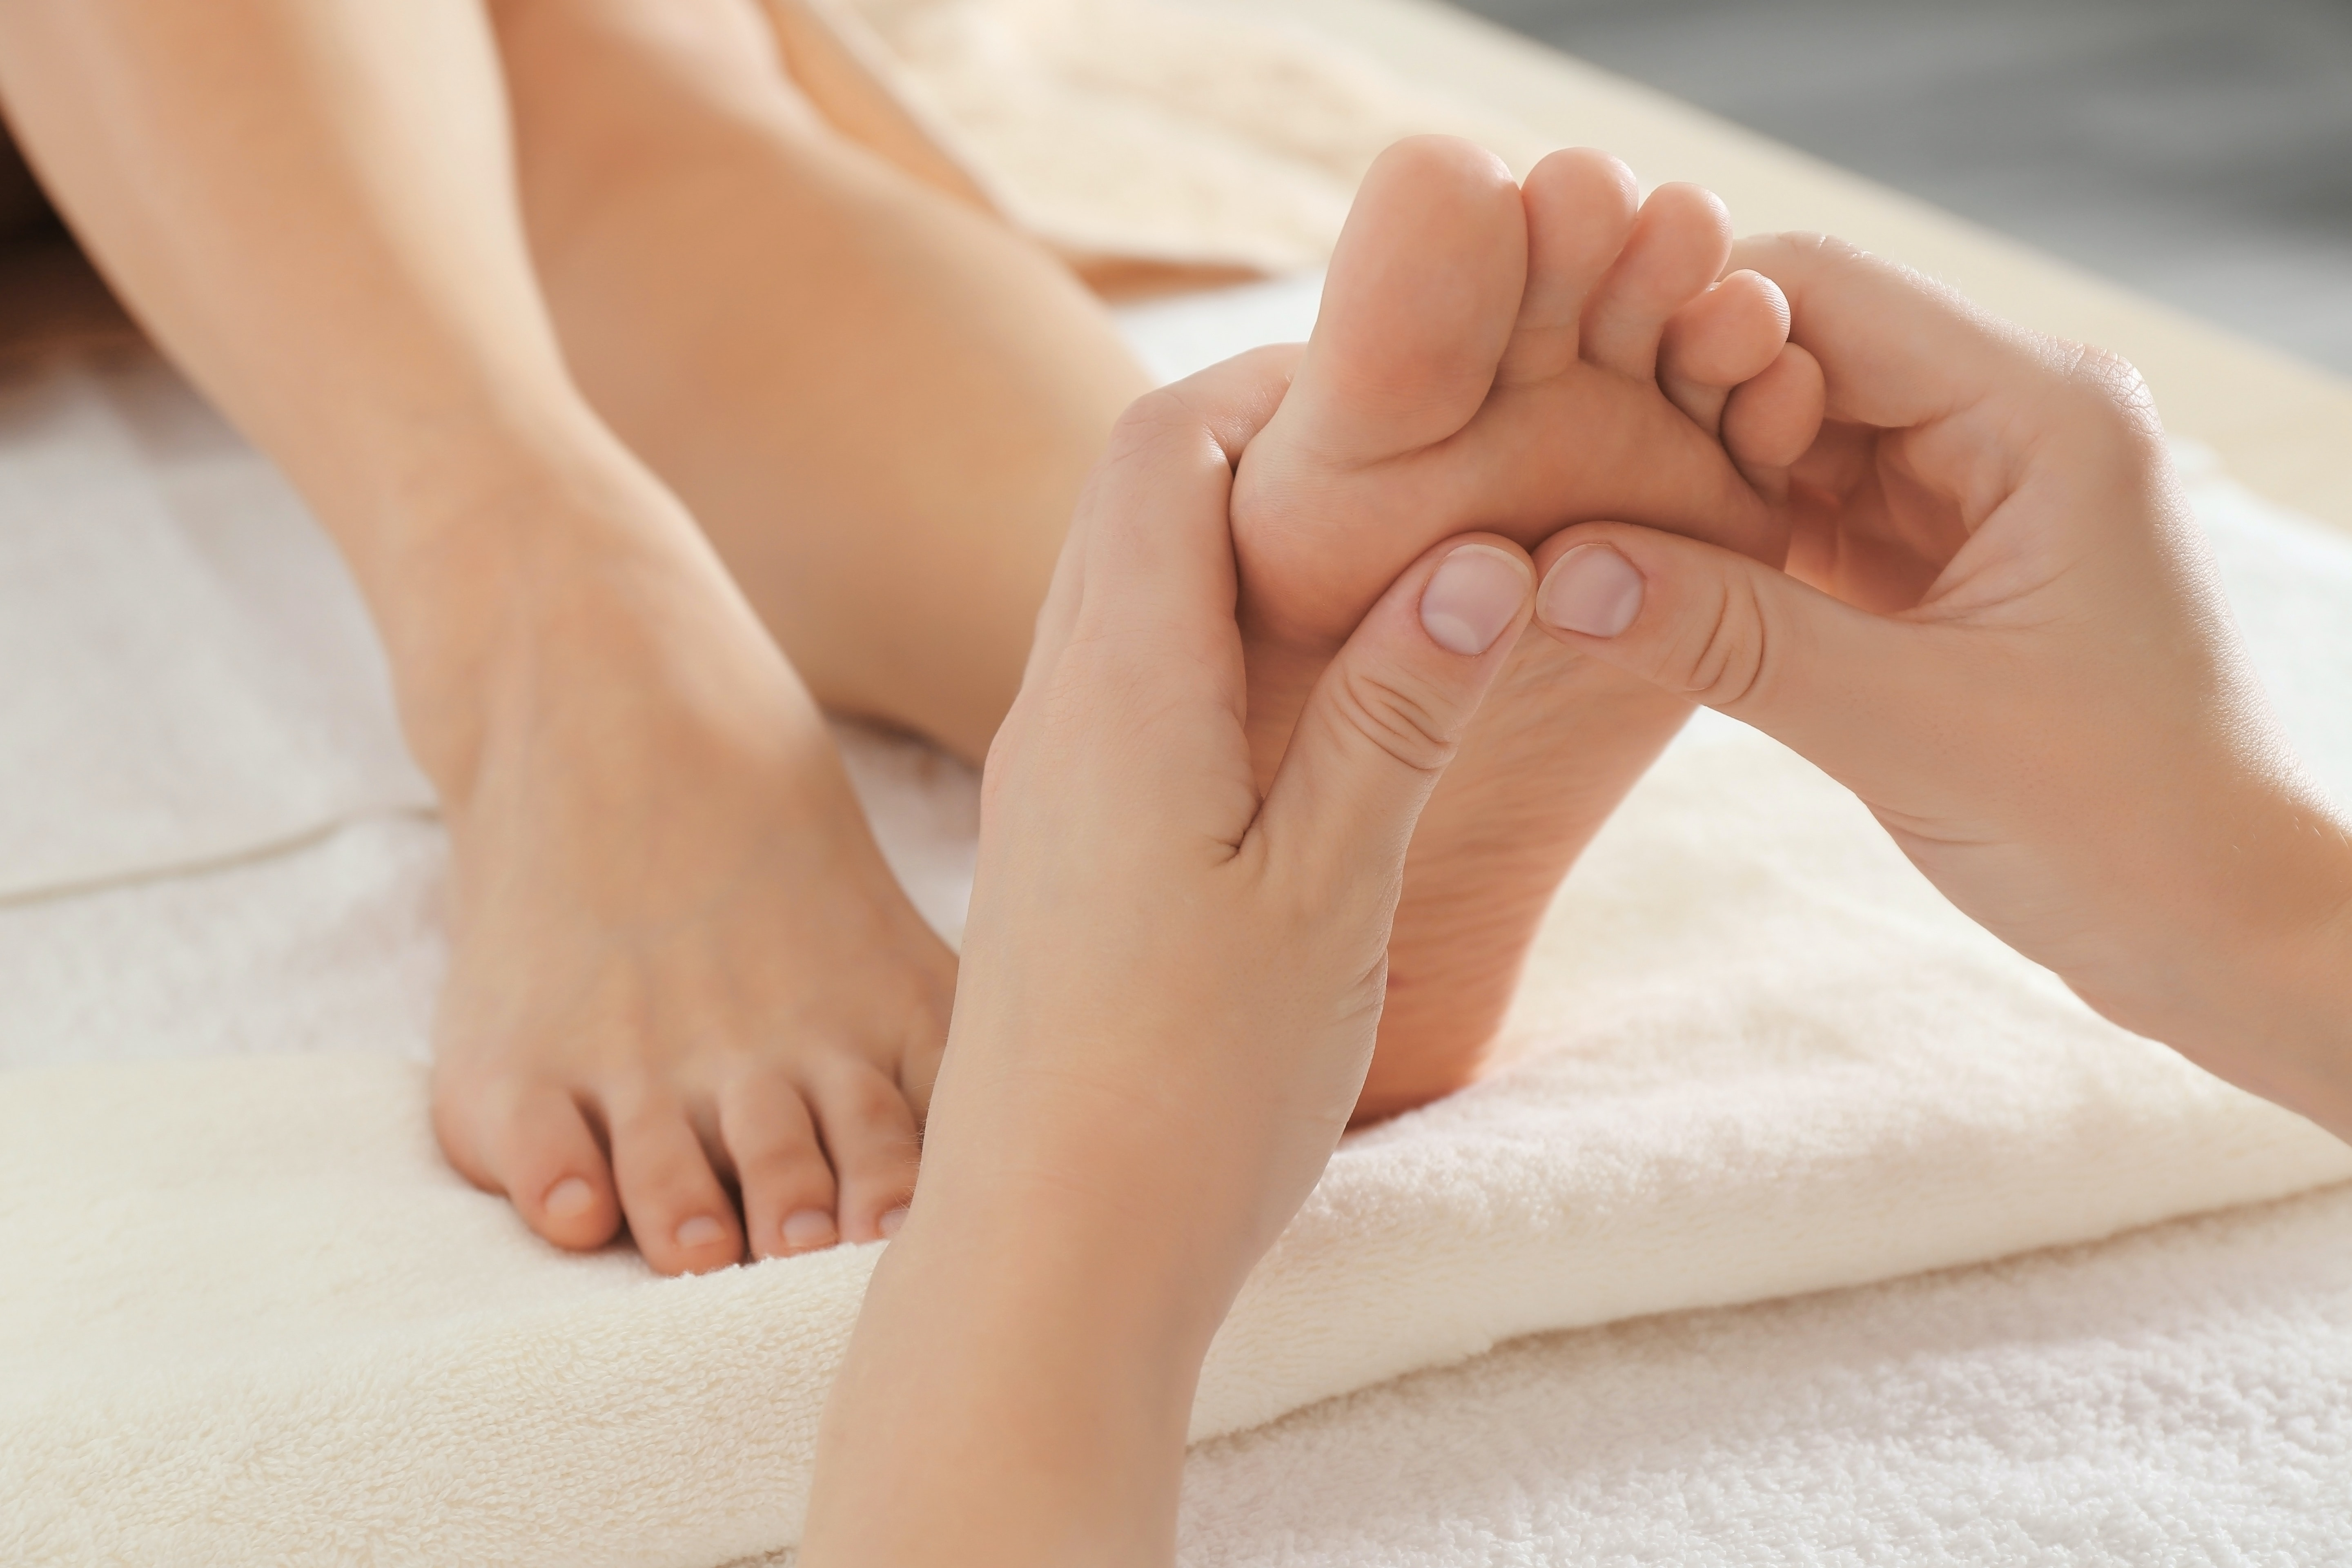 Several ways to combat this phenomenon, like bumps on the toes